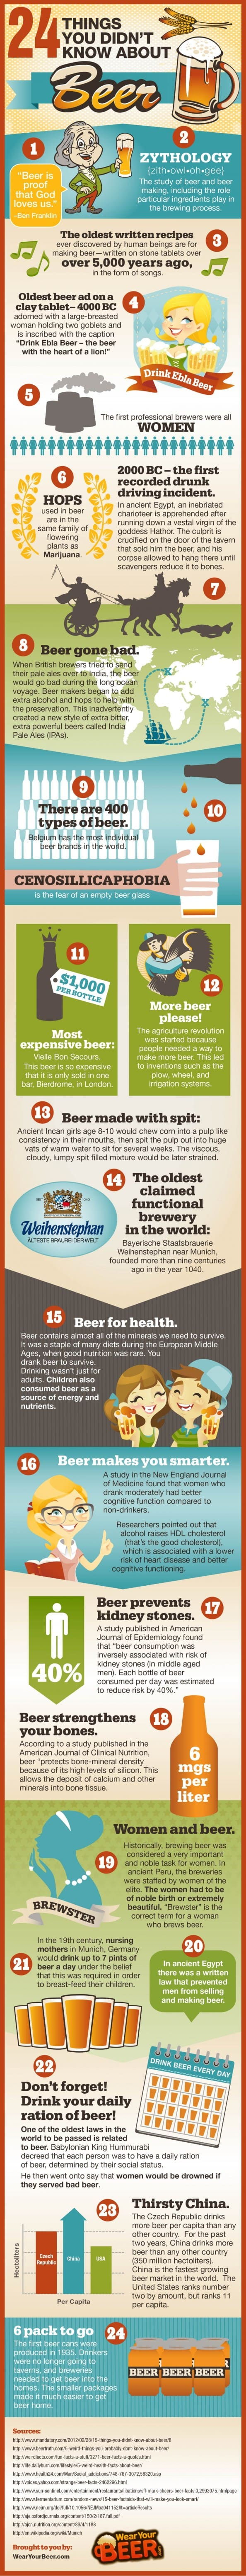 24 things you didnt know about beer